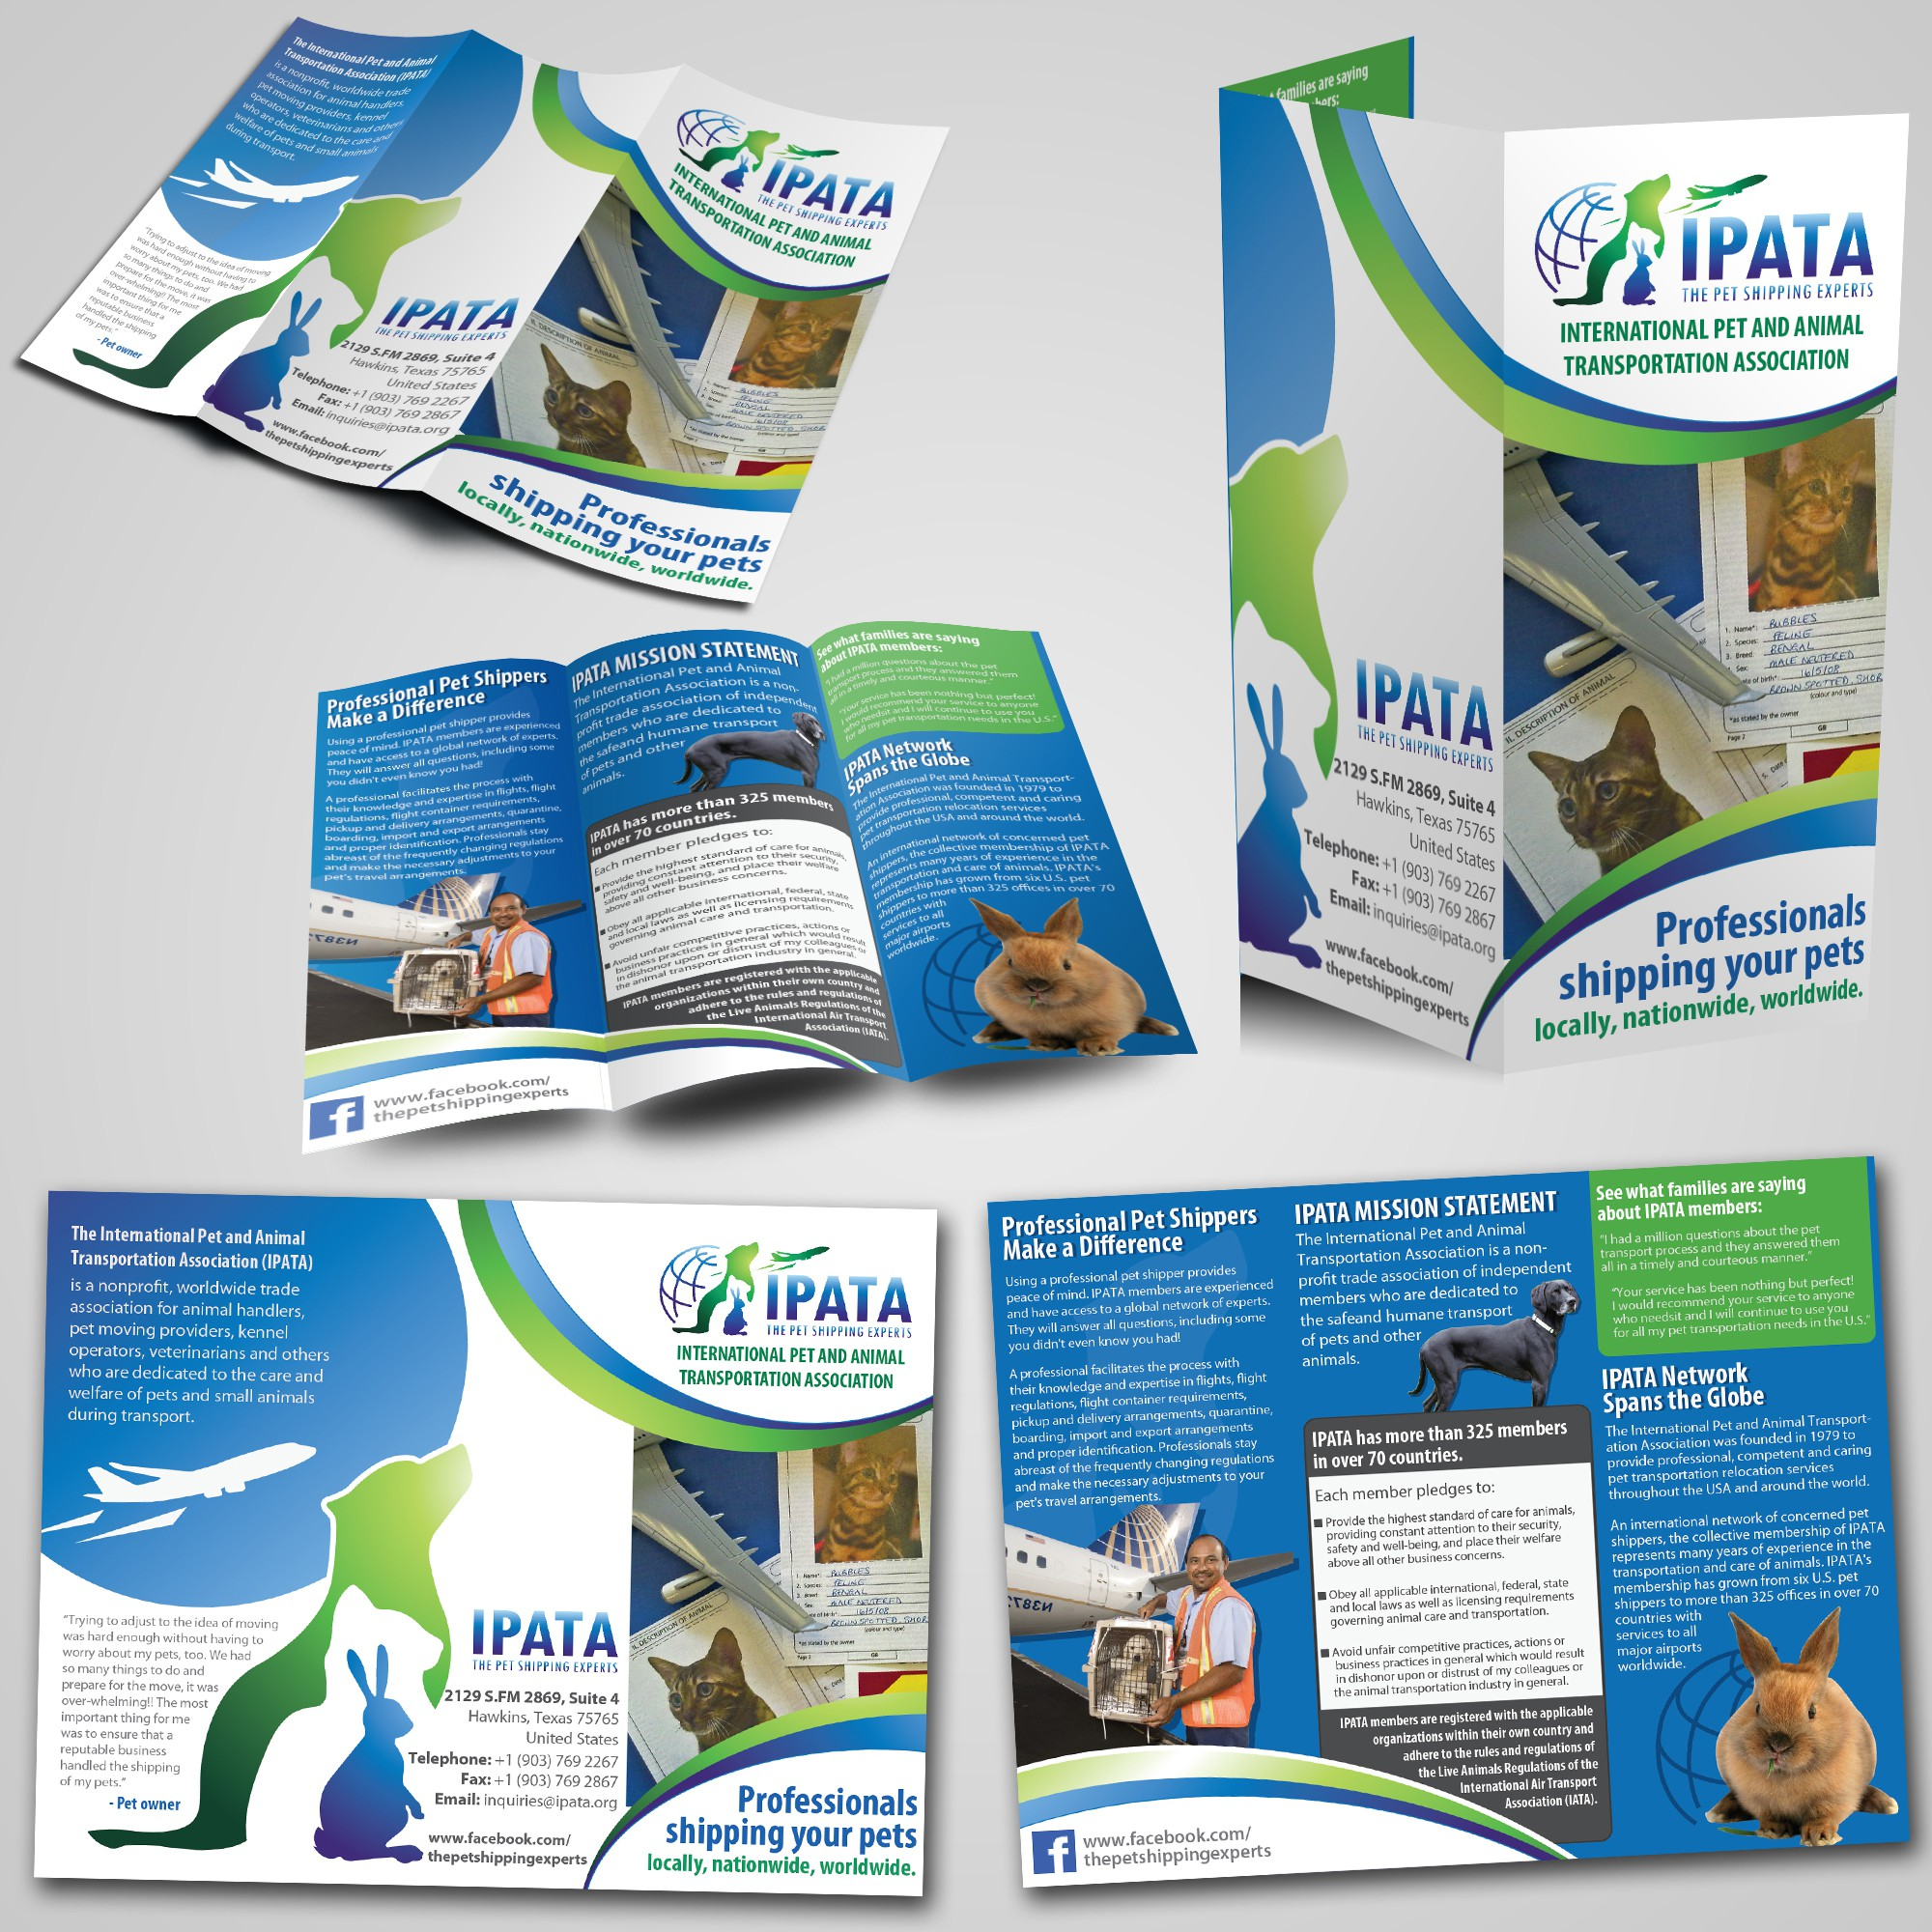 print or packaging design for International Pet and Animal Transportation Association (IPATA)